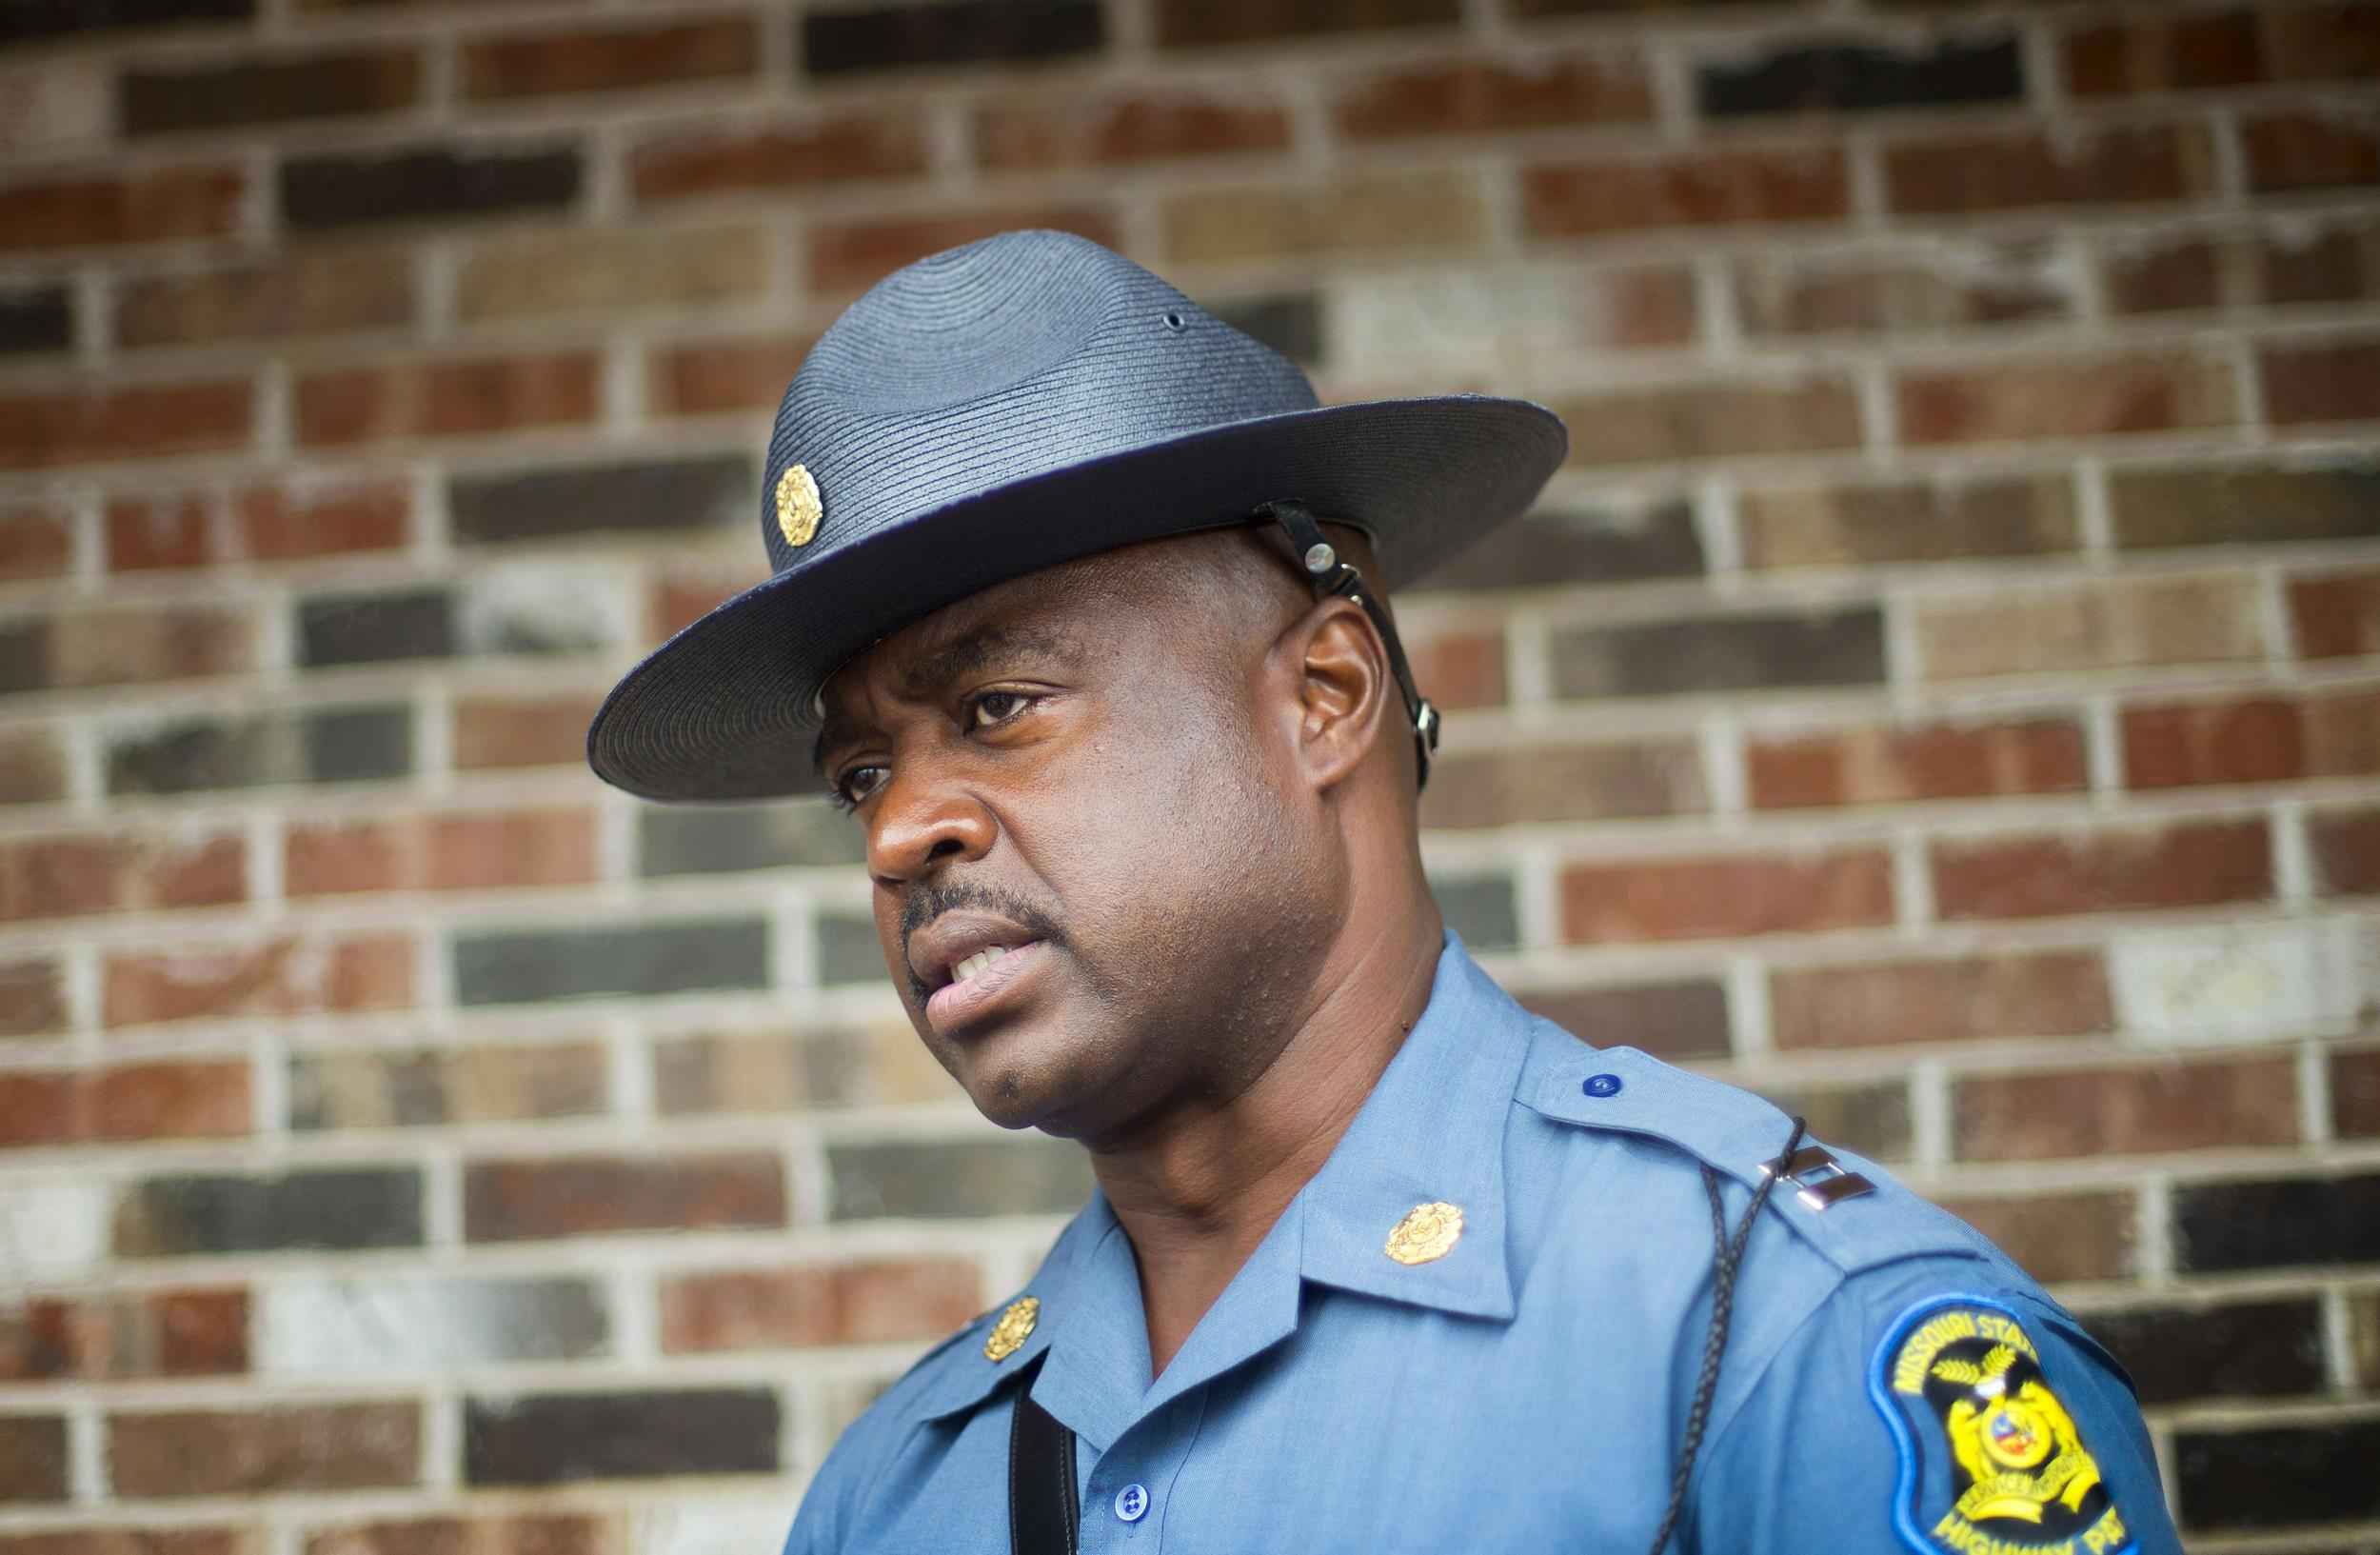 Image: Capt. Ron Johnson of the Missouri State Highway Patrol speaks